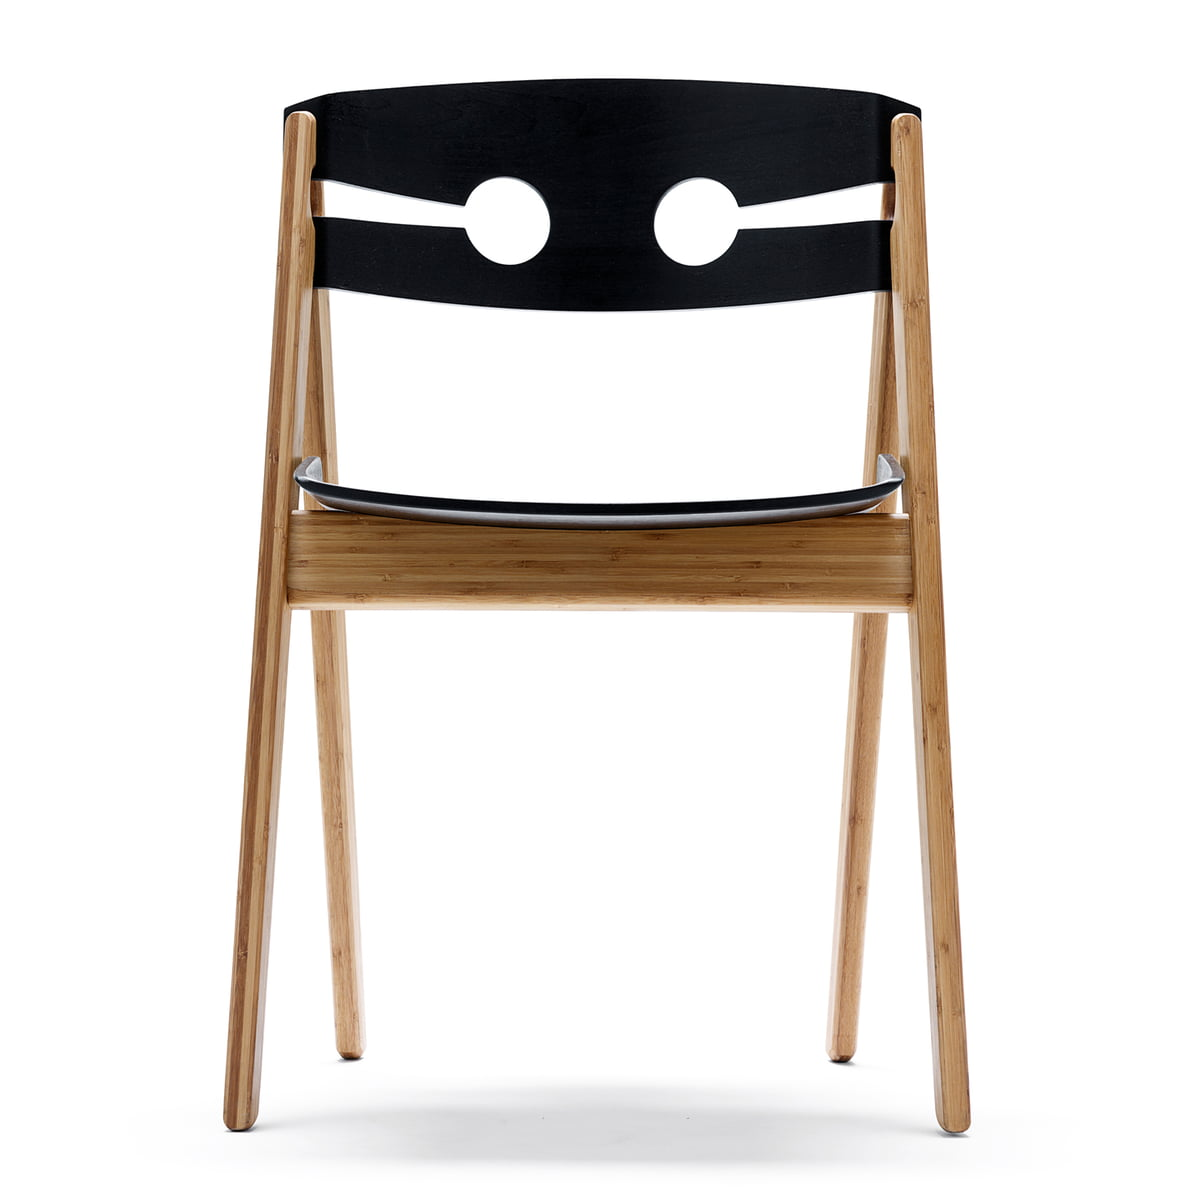 wooden chair front view. we do wood - dining chair no. 1 black, front view wooden v